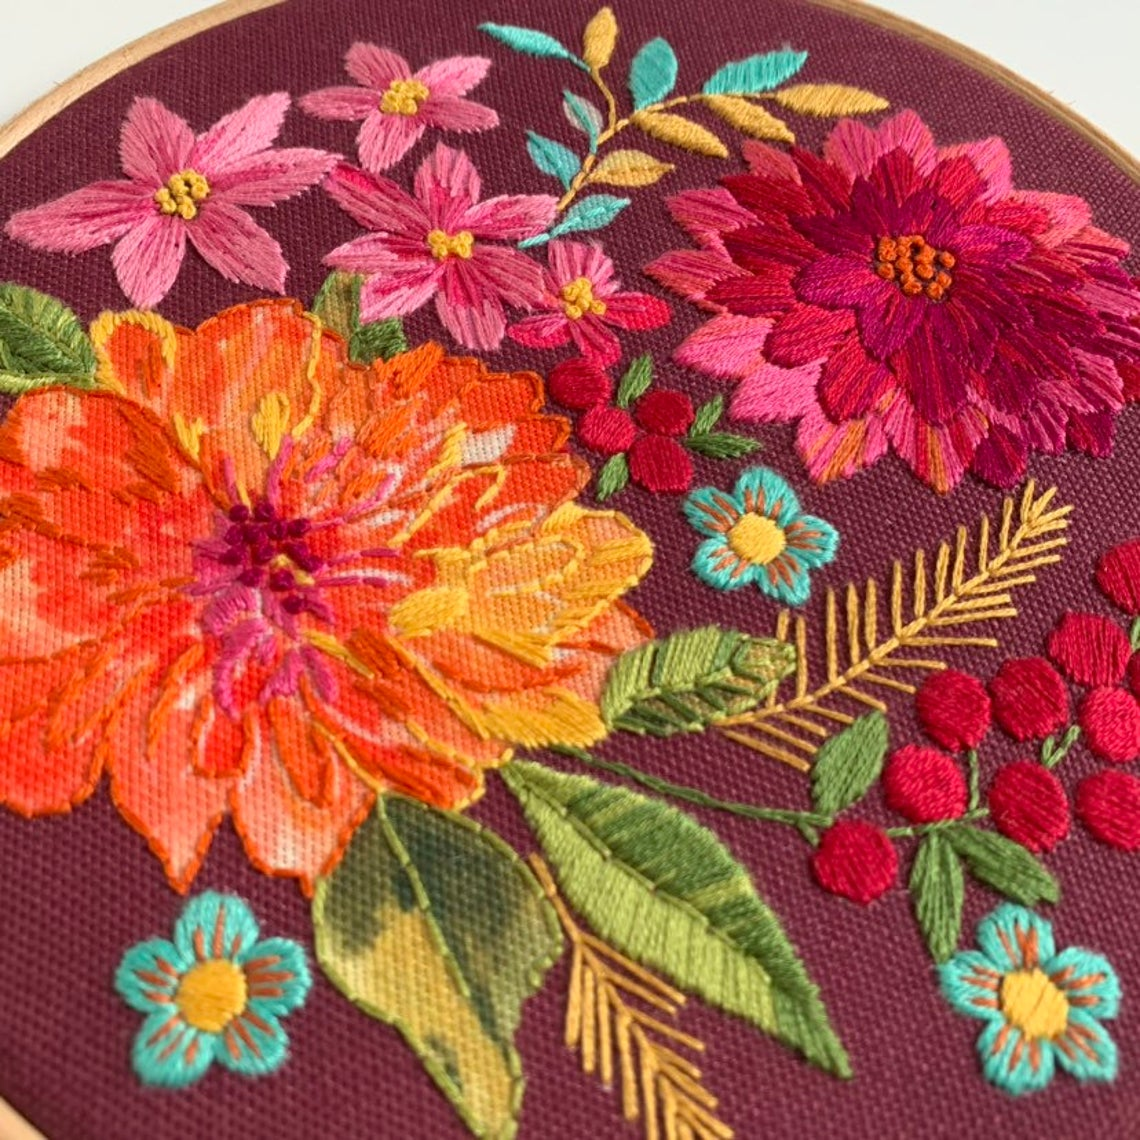 Dahlia Bloom Embroidery Kit